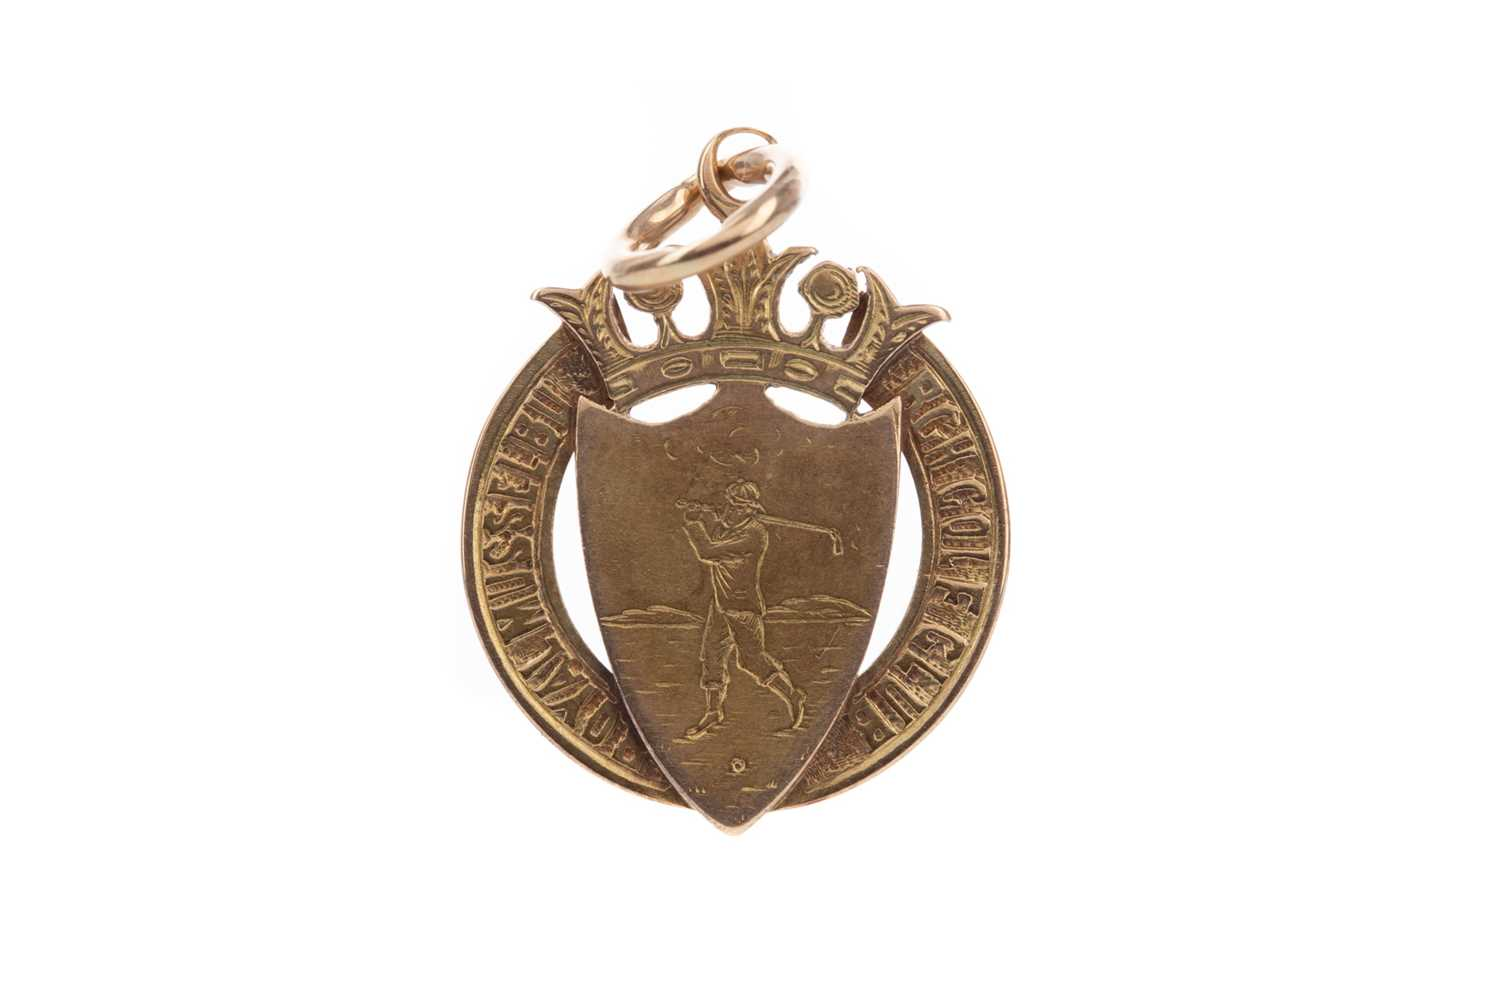 Lot 1738 - A LATE VICTORIAN ROYAL MUSSELBURGH GOLF CLUB NINE CARAT GOLD MEDAL